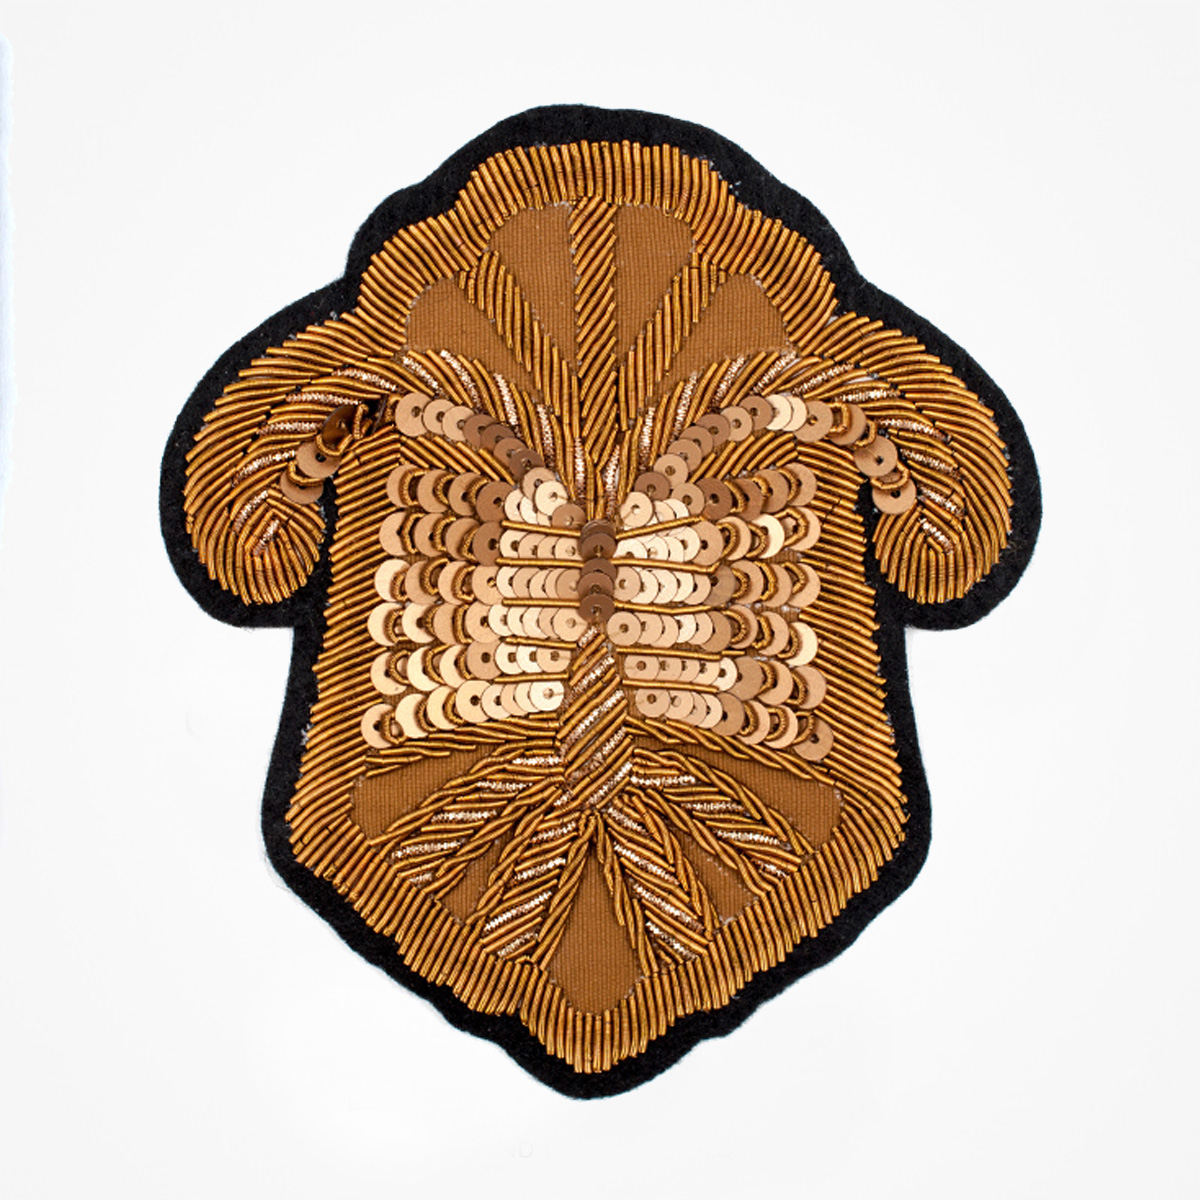 Qg - 3531 - Fashionable 3D embroidered look Made by skilled artisans Bullion wire and silk thread hand Stitched on Black color Felt Available in gold and silver colors Size = 115 mm height 100 mm width sewon backing: Perfect for caps, sports jacket, leather jackets, blazer coat, Blazer Pocket, shirts uniforms, Accessories and many More Pin backing: easy to removable 5